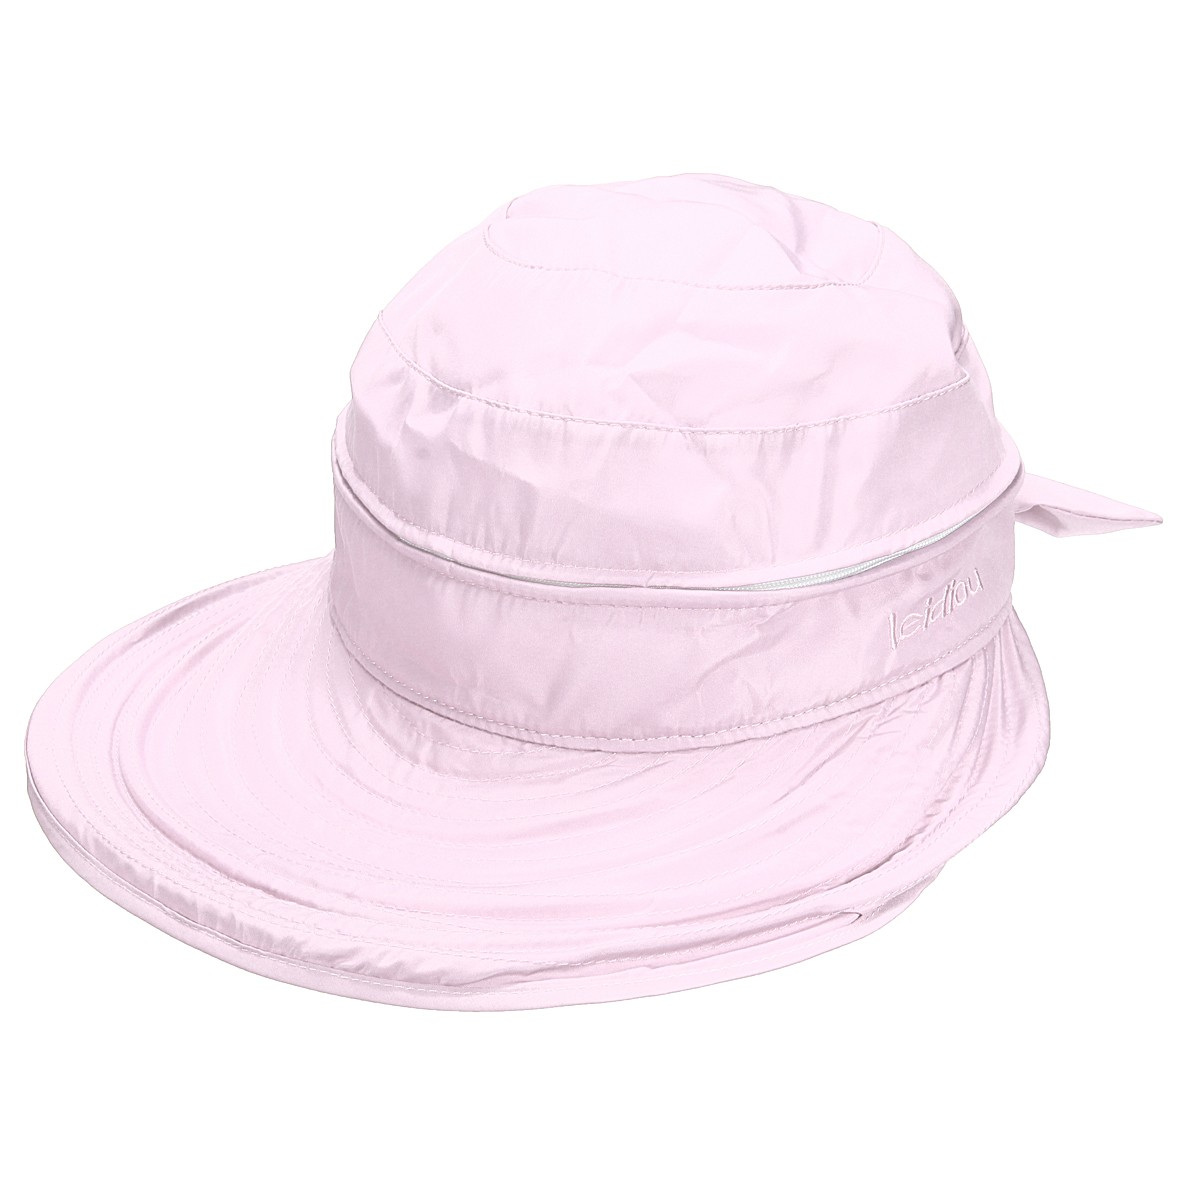 Women Ladies Polyester Wide Large Brim Hat Summer Beach Sun Visor Removable Breathable Cap